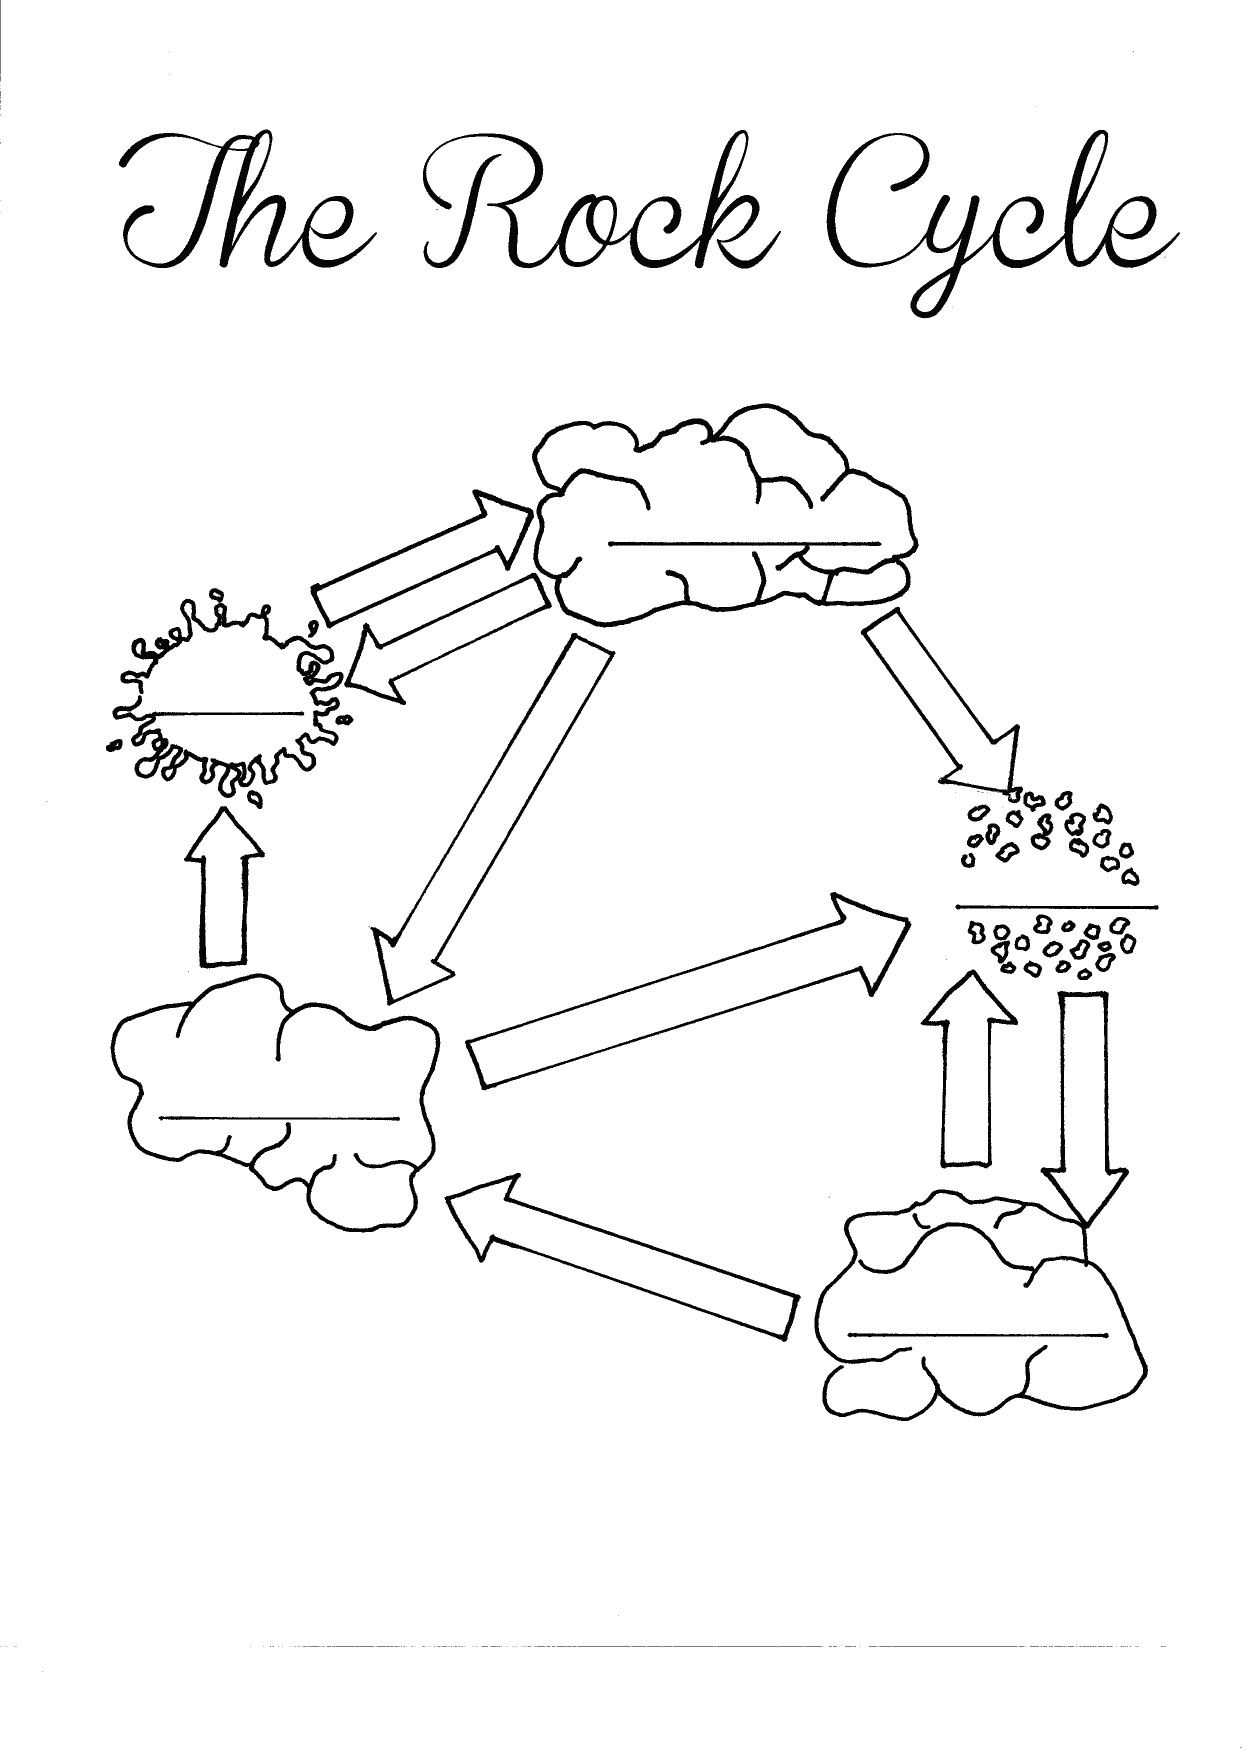 The Rock Cycle Blank Worksheet - Fill In As You Talk About Or Go   Rock Cycle Worksheets Free Printable